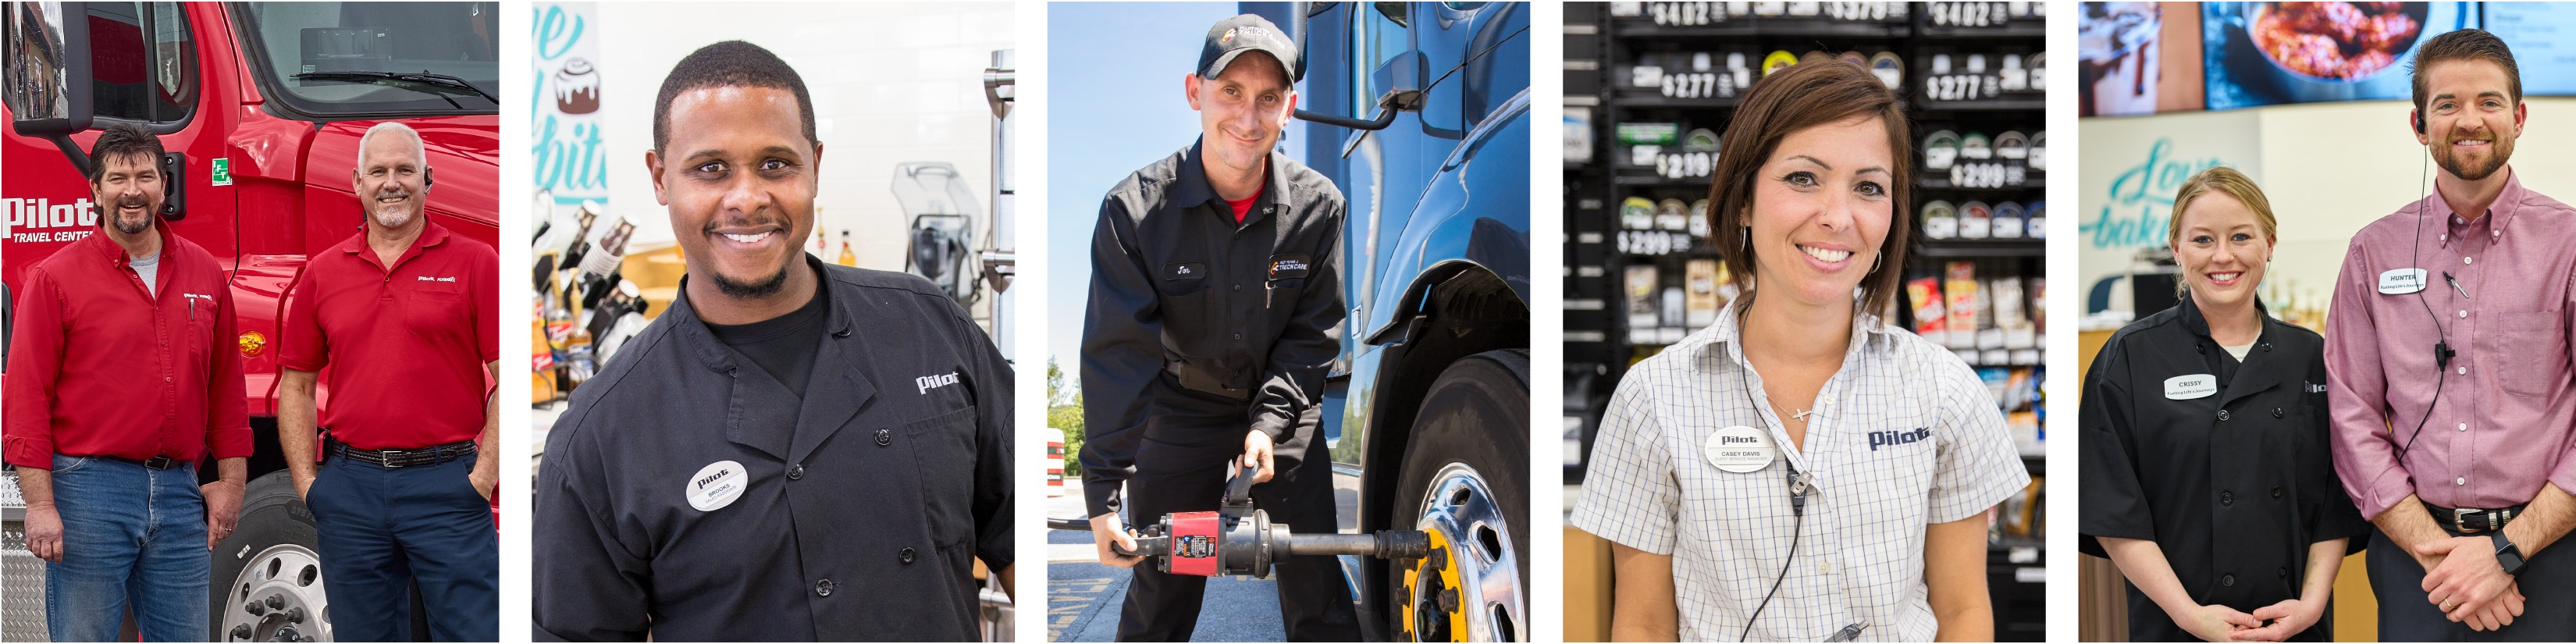 Pilot Flying J | LinkedIn